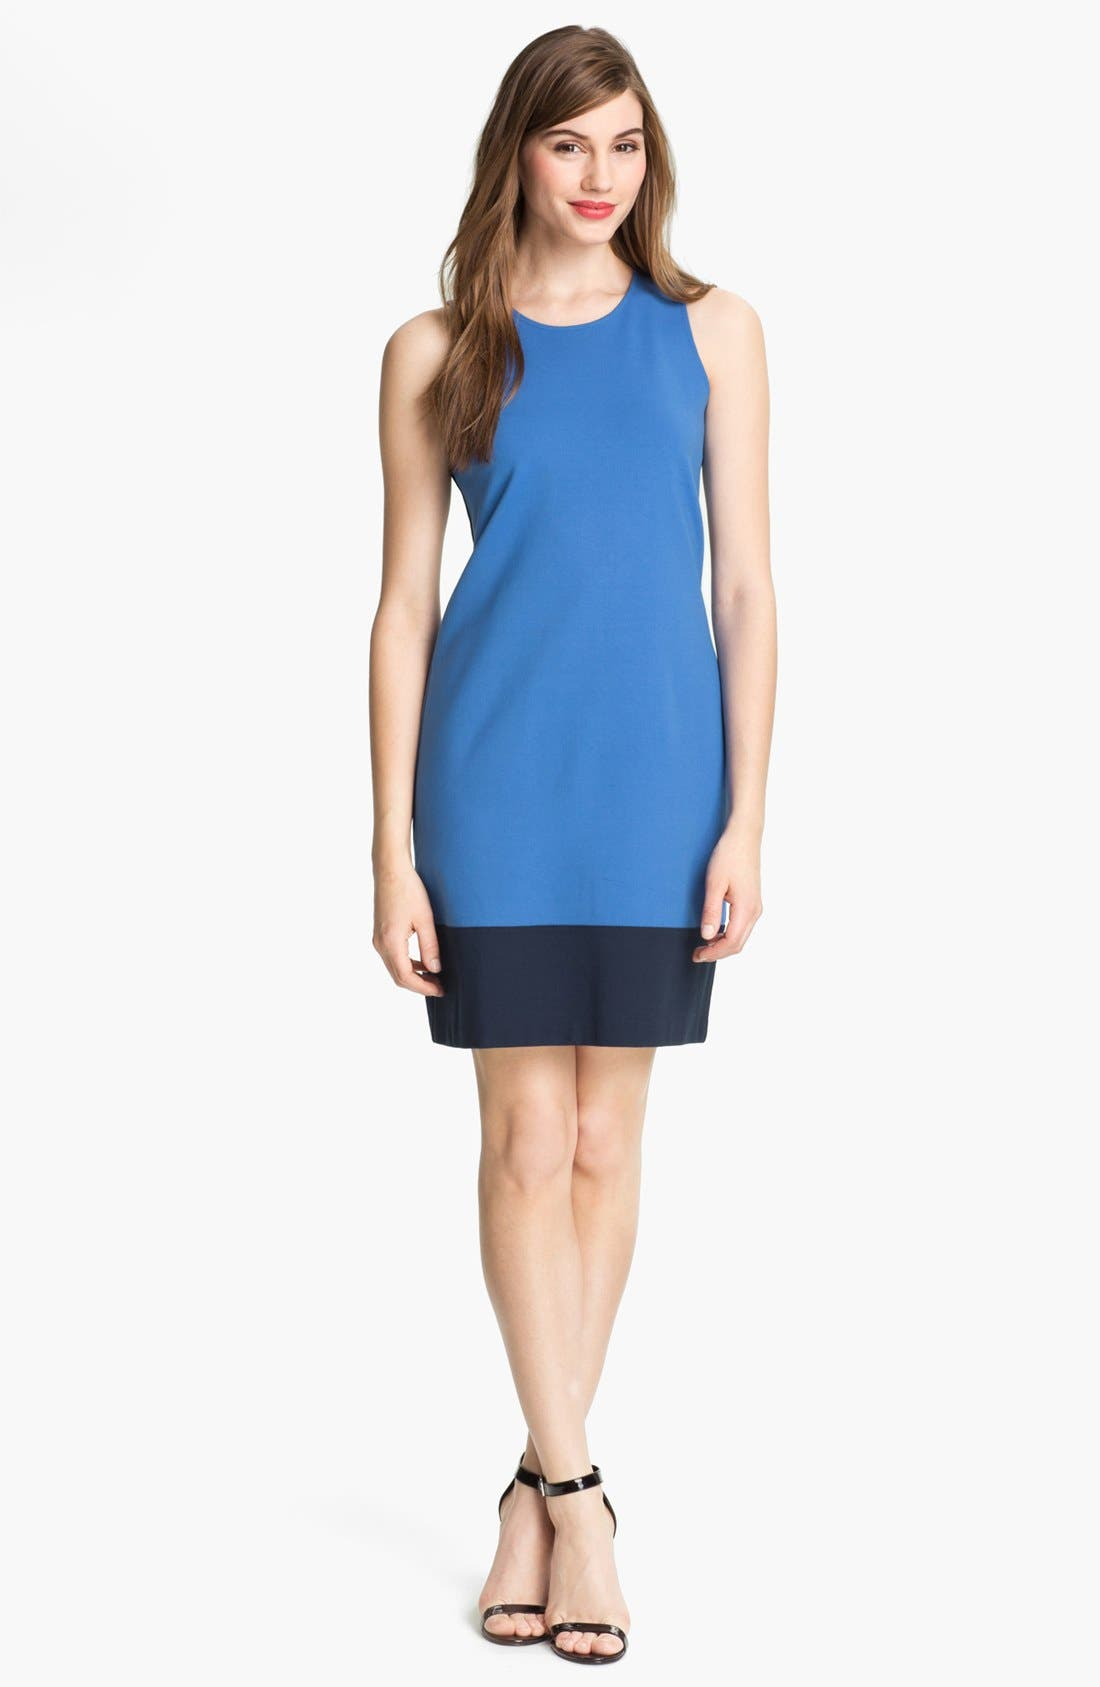 Alternate Image 1 Selected - Kenneth Cole New York 'Lia' Colorblock Dress